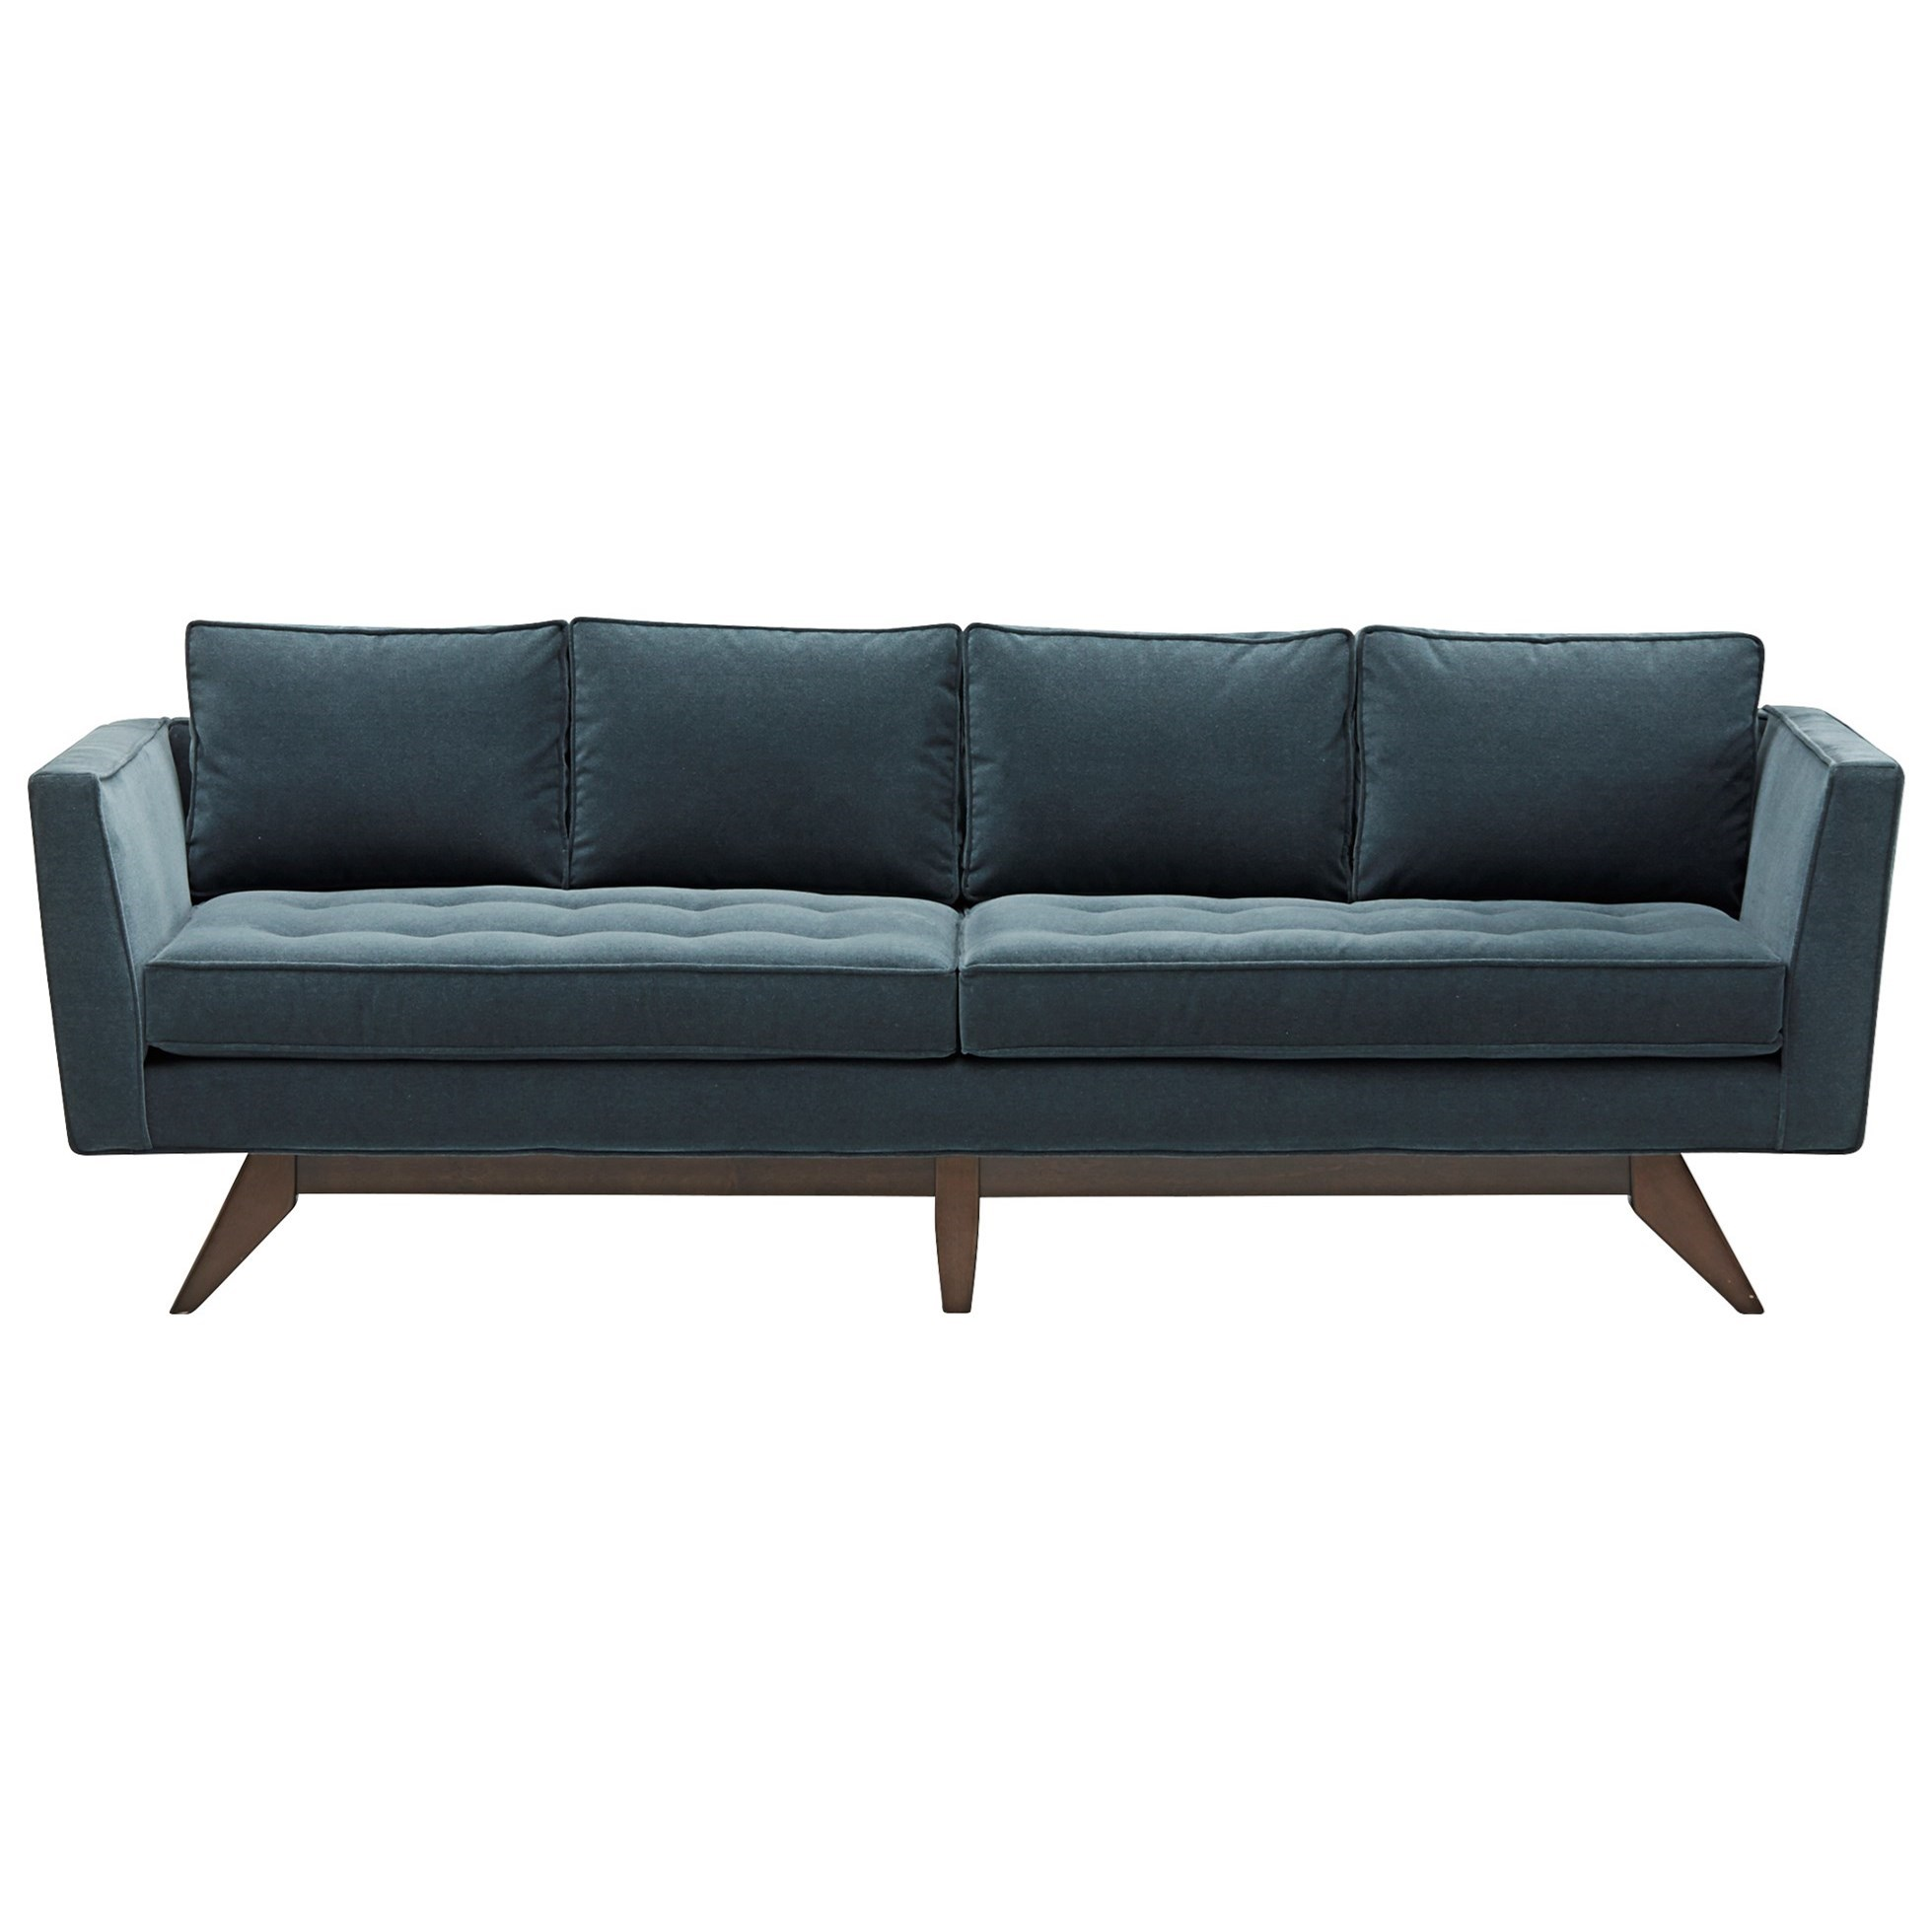 Klaussner fairfax mid century modern style sofa with angled wood legs